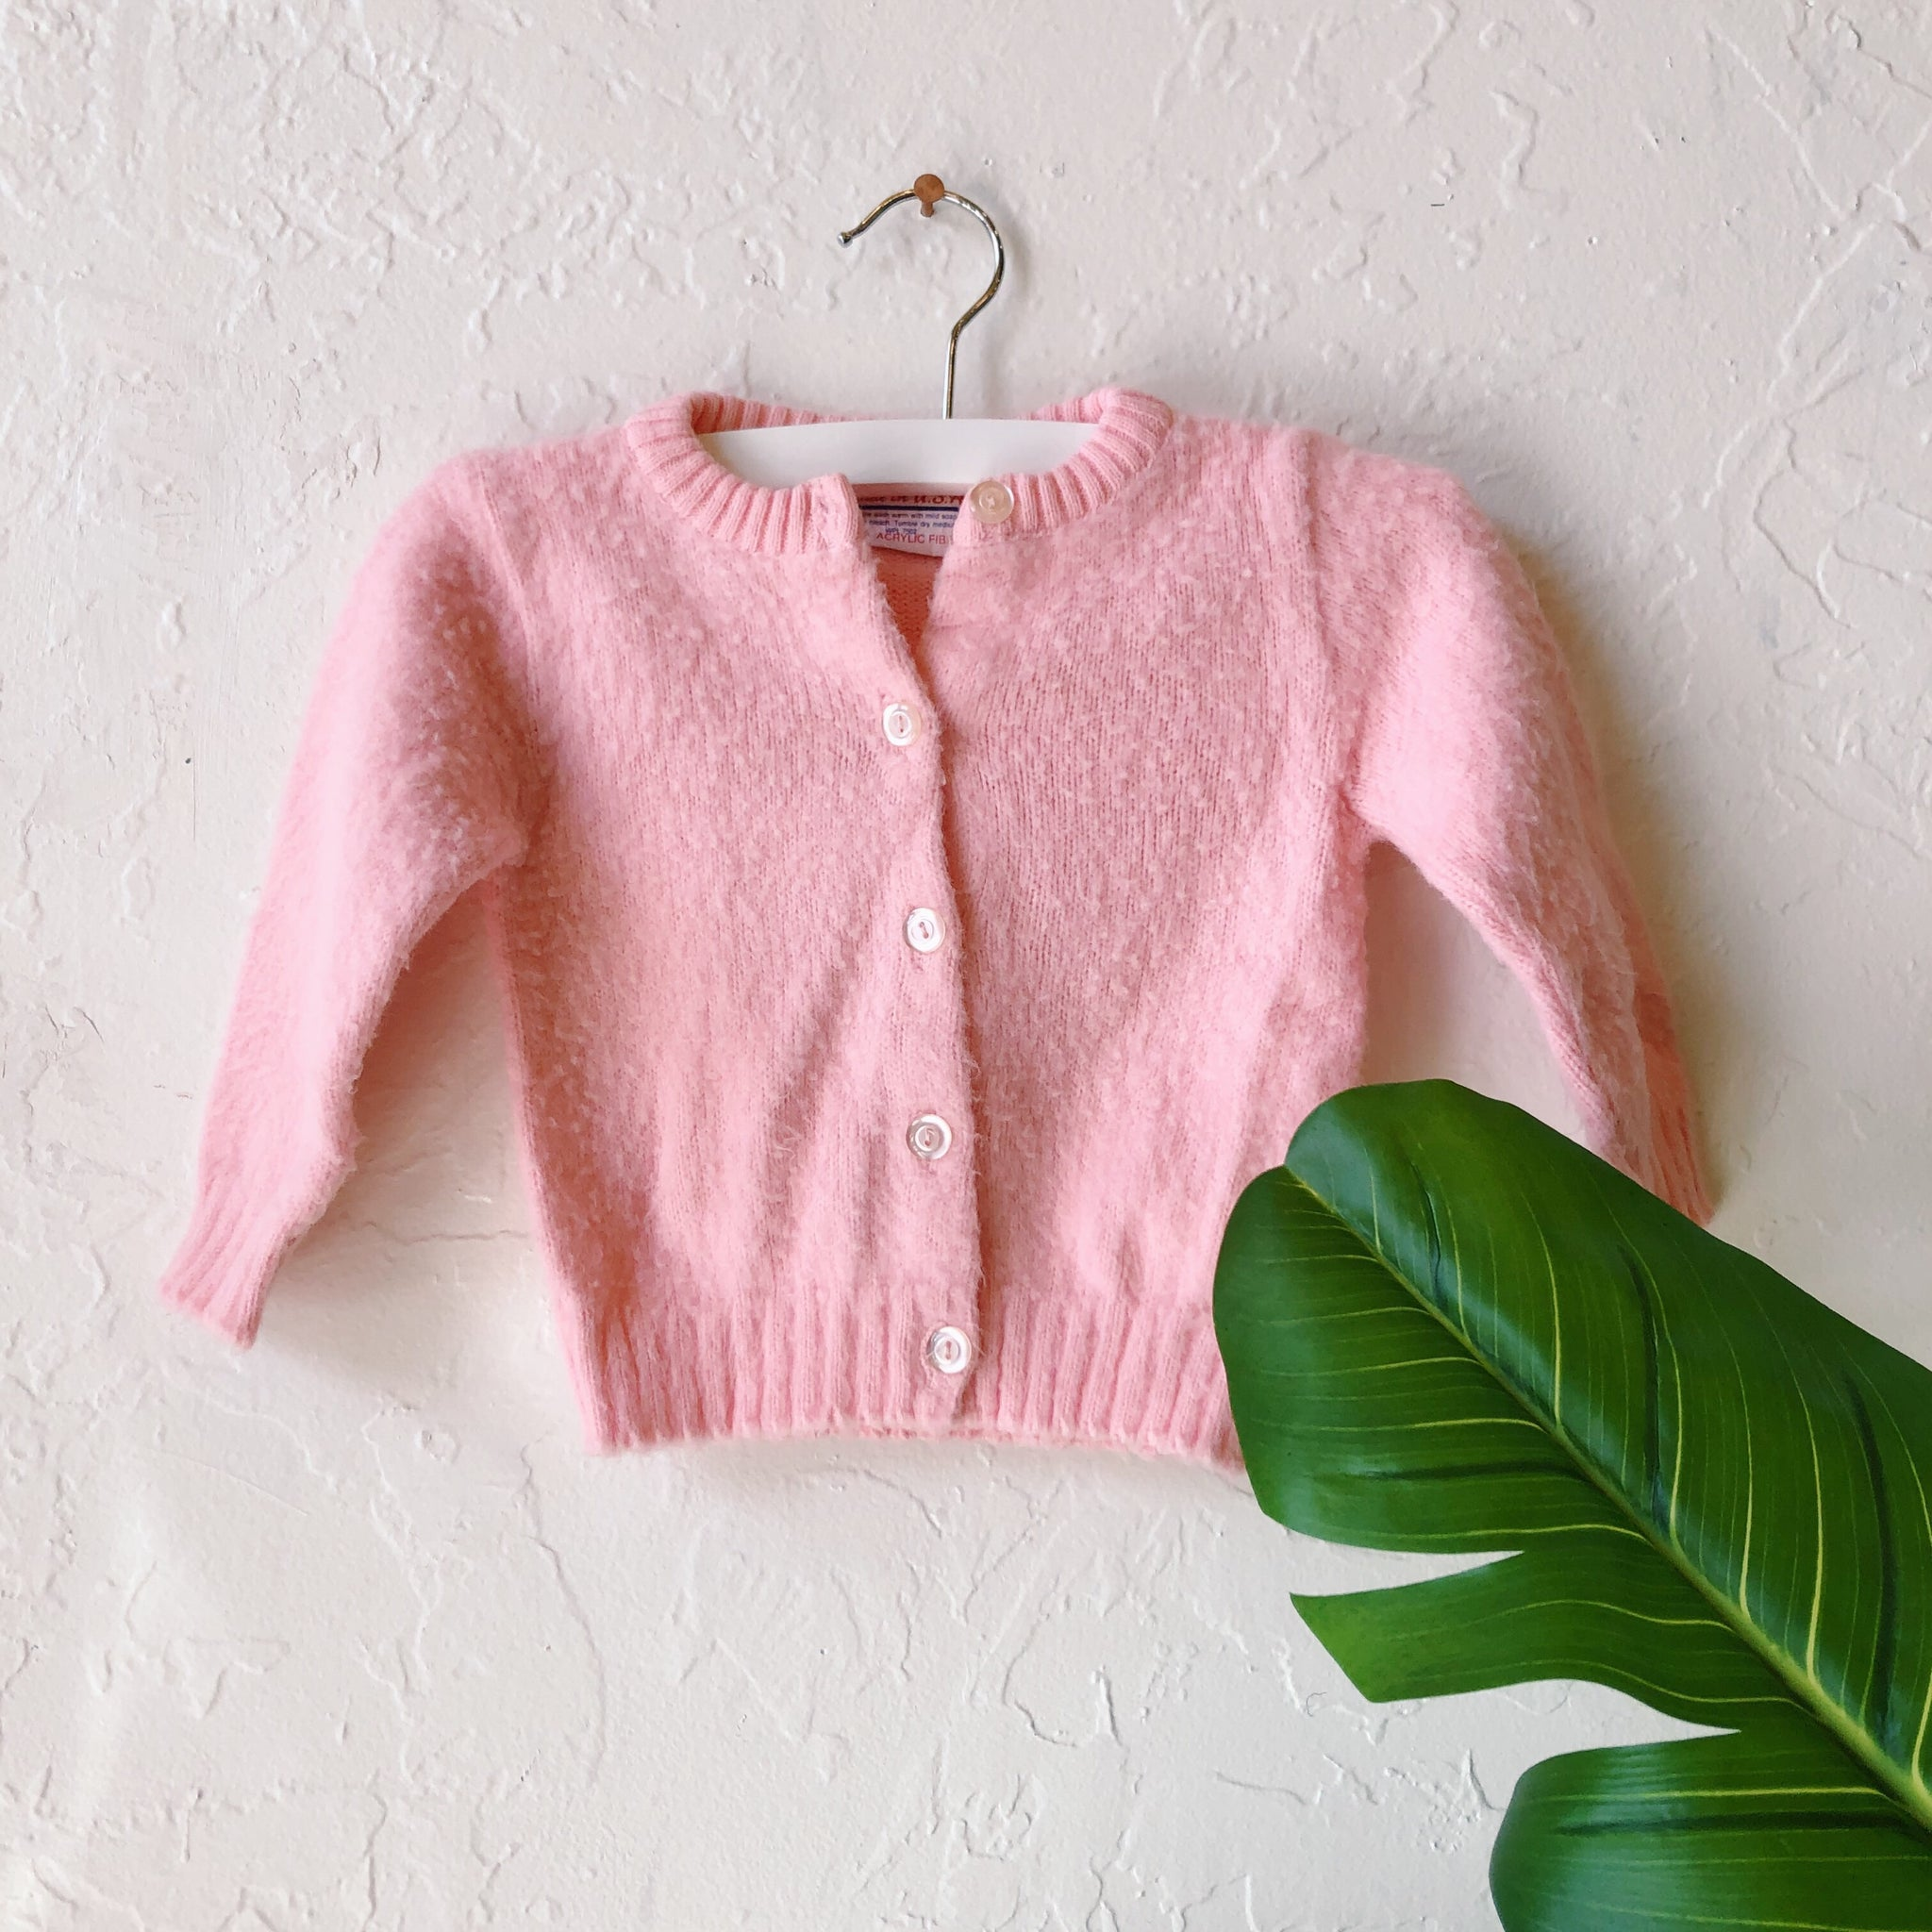 Lil Threads 01 - Bright Pink Buttoned Cardigan